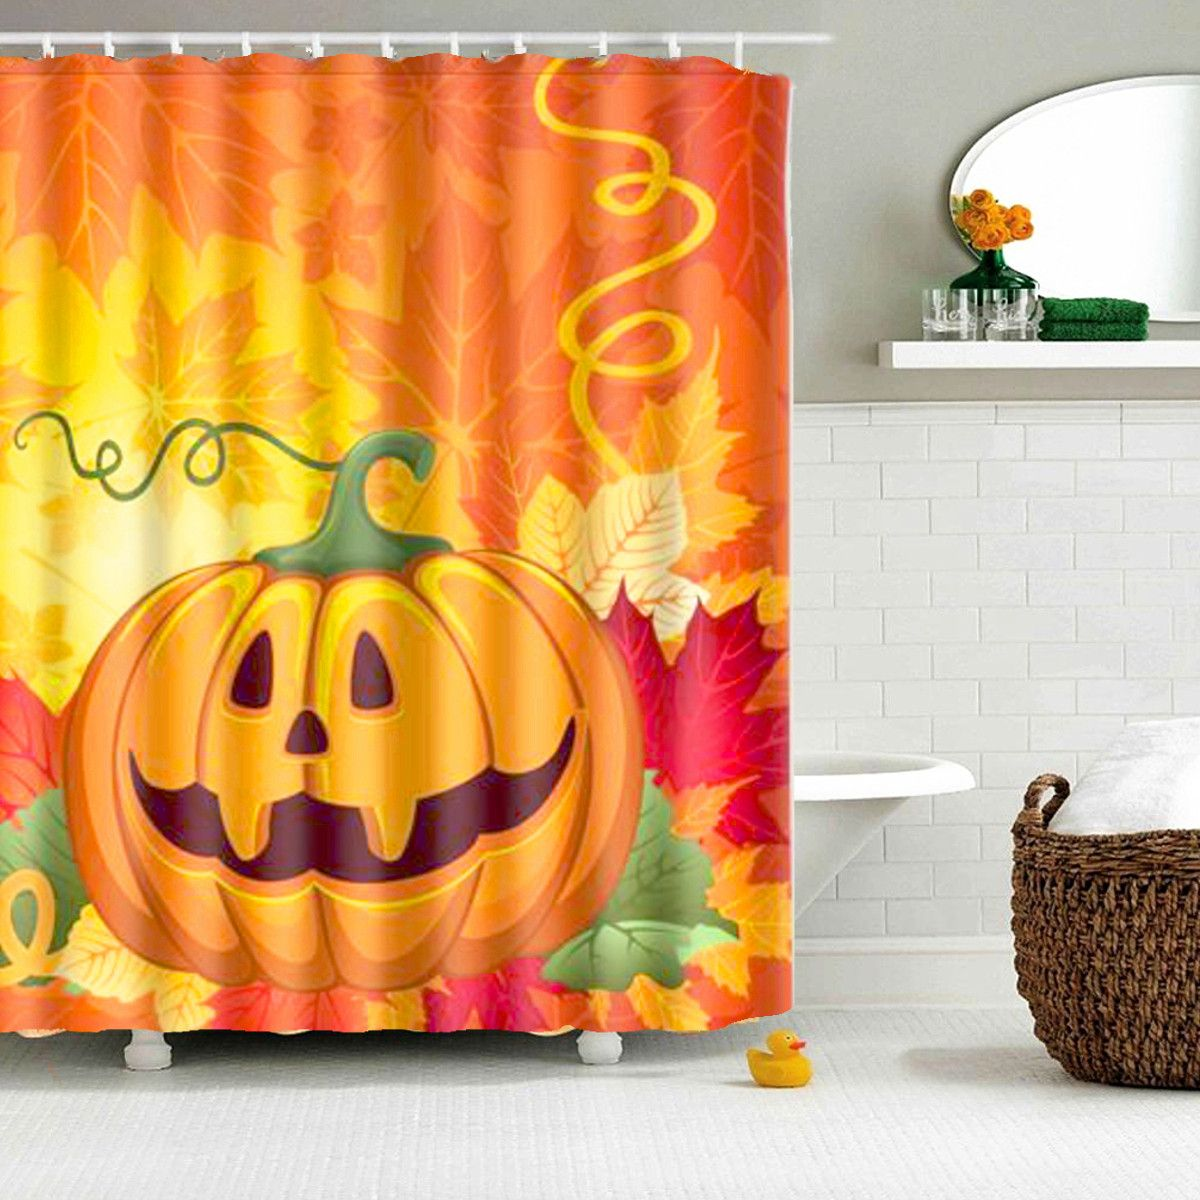 150x180cm 3D Halloween Ghost Pumpkin Polyester Shower Curtain Bathroom  Decor With 12 Hooks